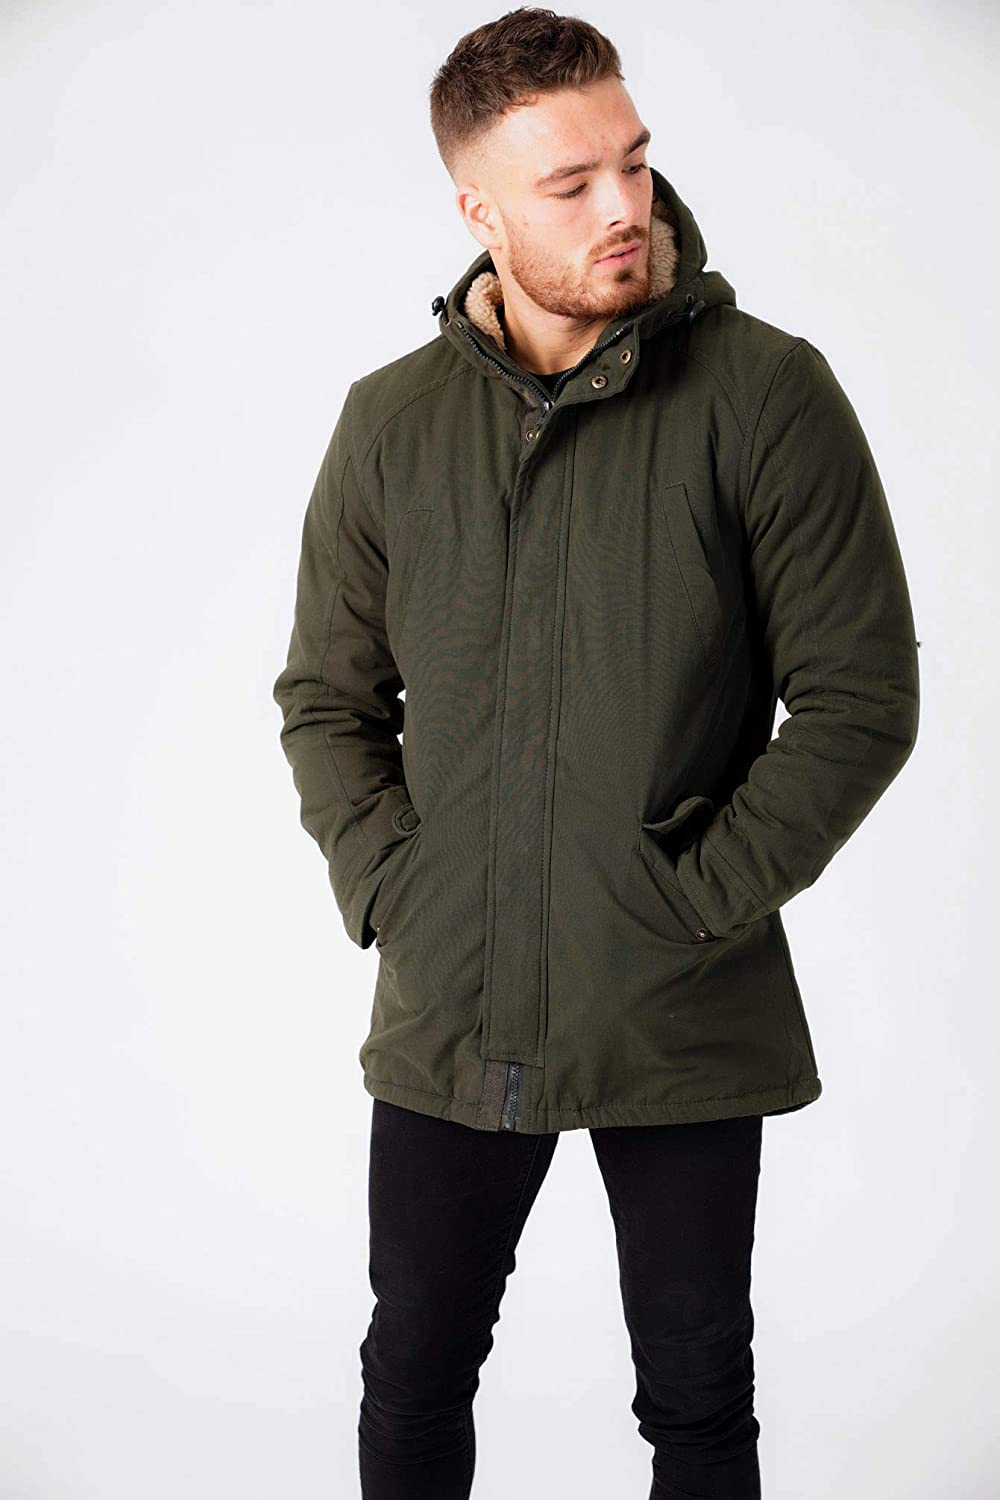 Tokyo Laundry Mens Welker Borg Lined Hooded Fishtail Parka Coat